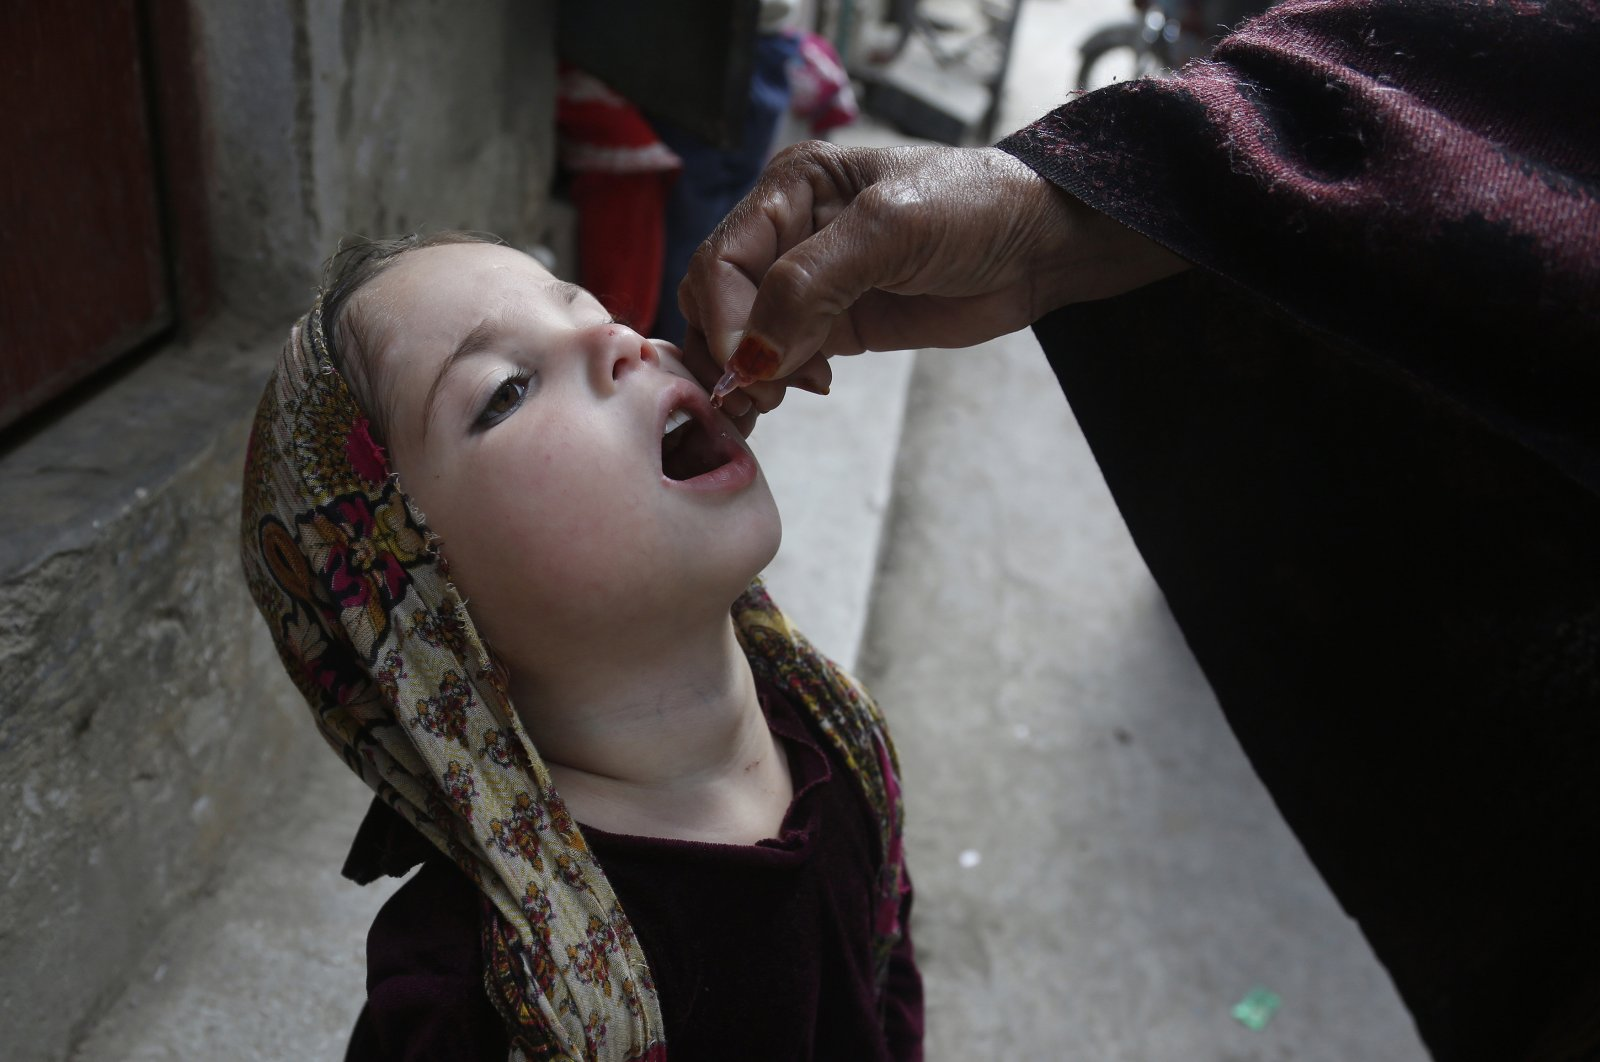 A health worker gives a polio vaccine to a child in Lahore, Pakistan, Monday, March 16, 2020. (AP Photo)